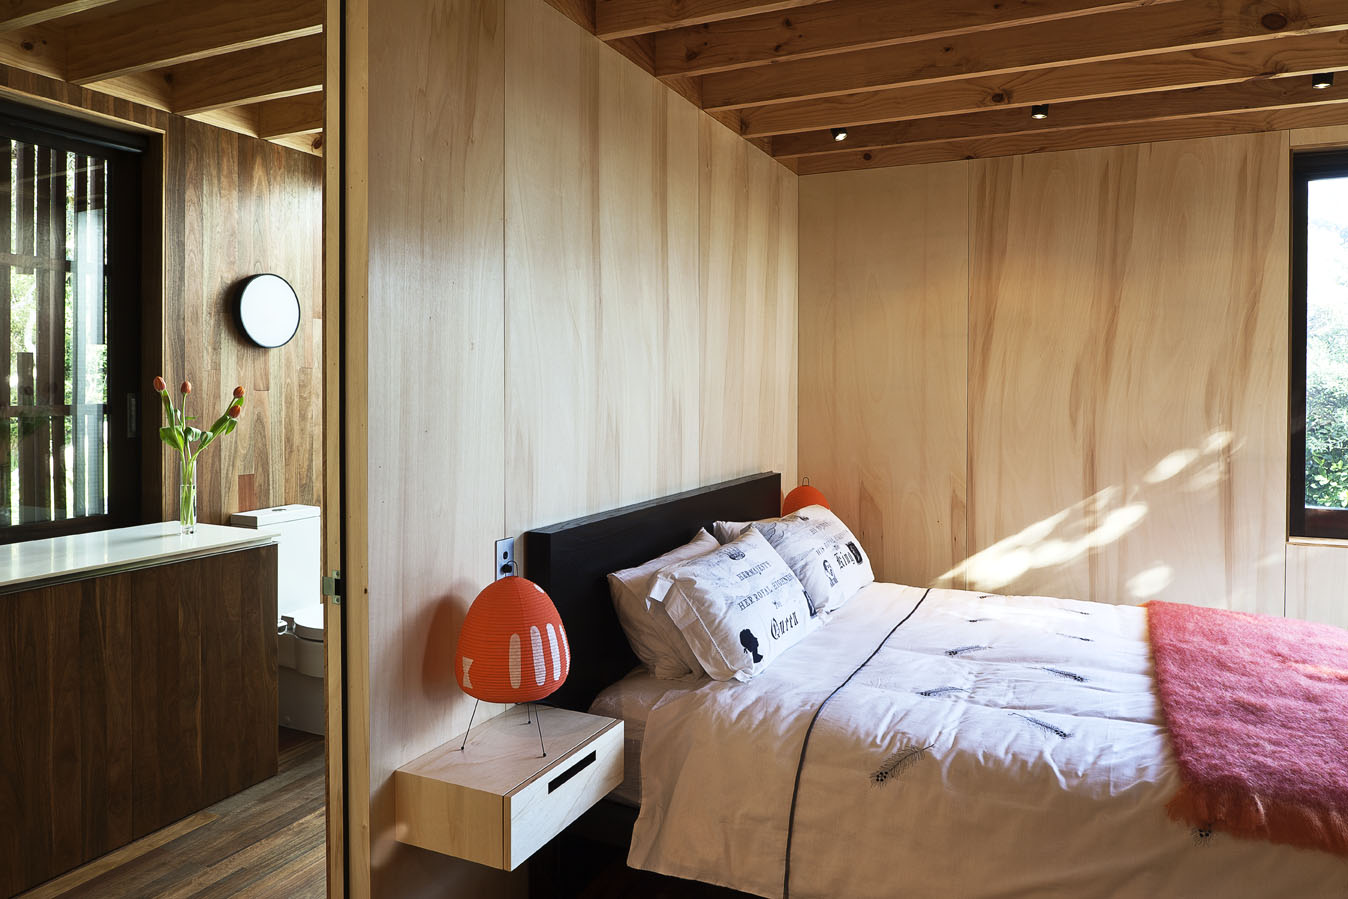 wooden-raw-exposed-modern-bedroom-interior-stylish-inspiration12